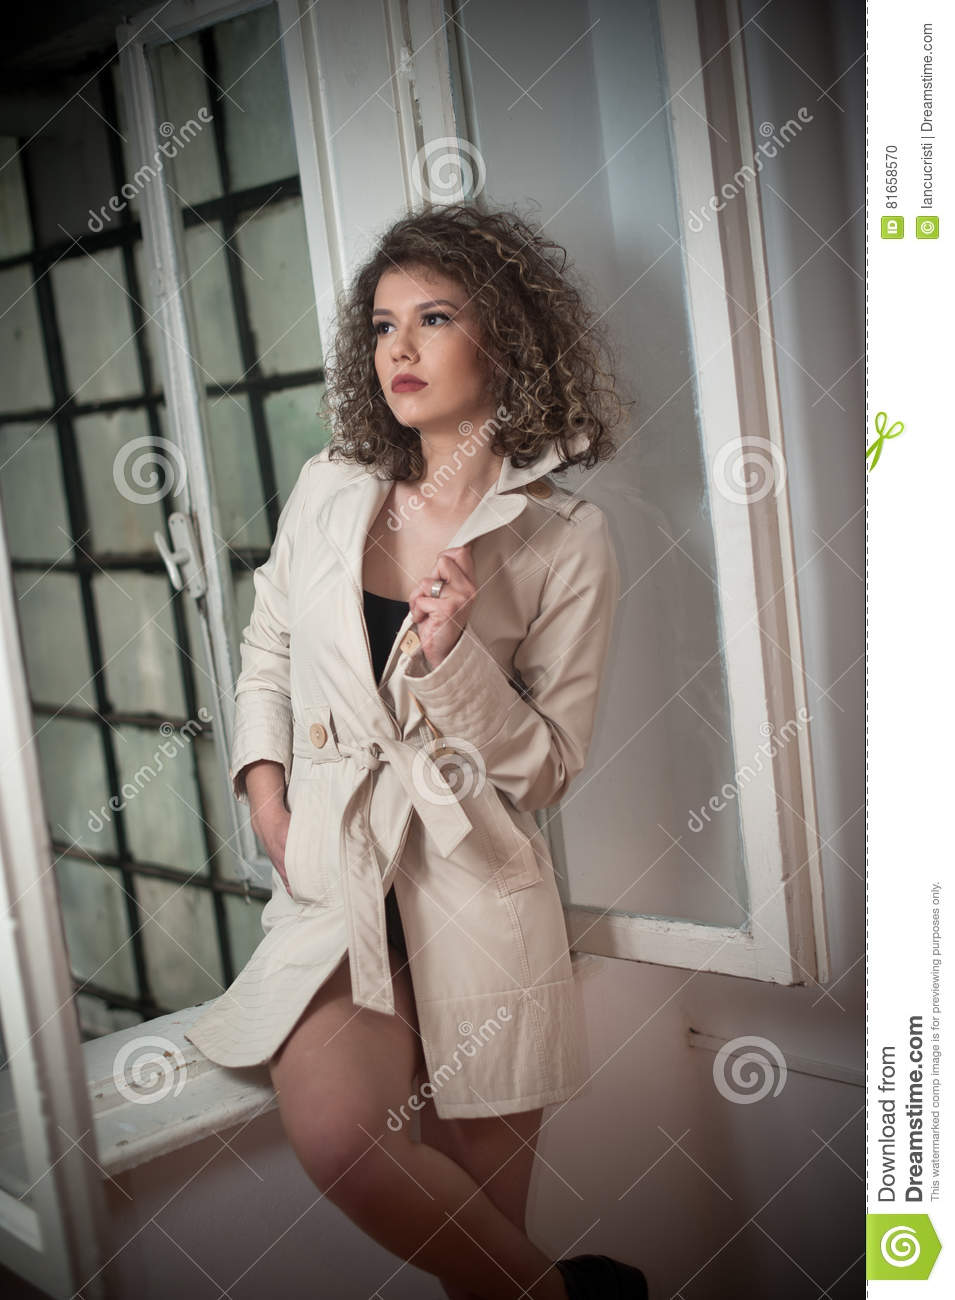 20cf9bb311892 Slim young fashion model wearing white coat in window frame. Lovely  fashionable woman with light brown curly hair. Attractive female